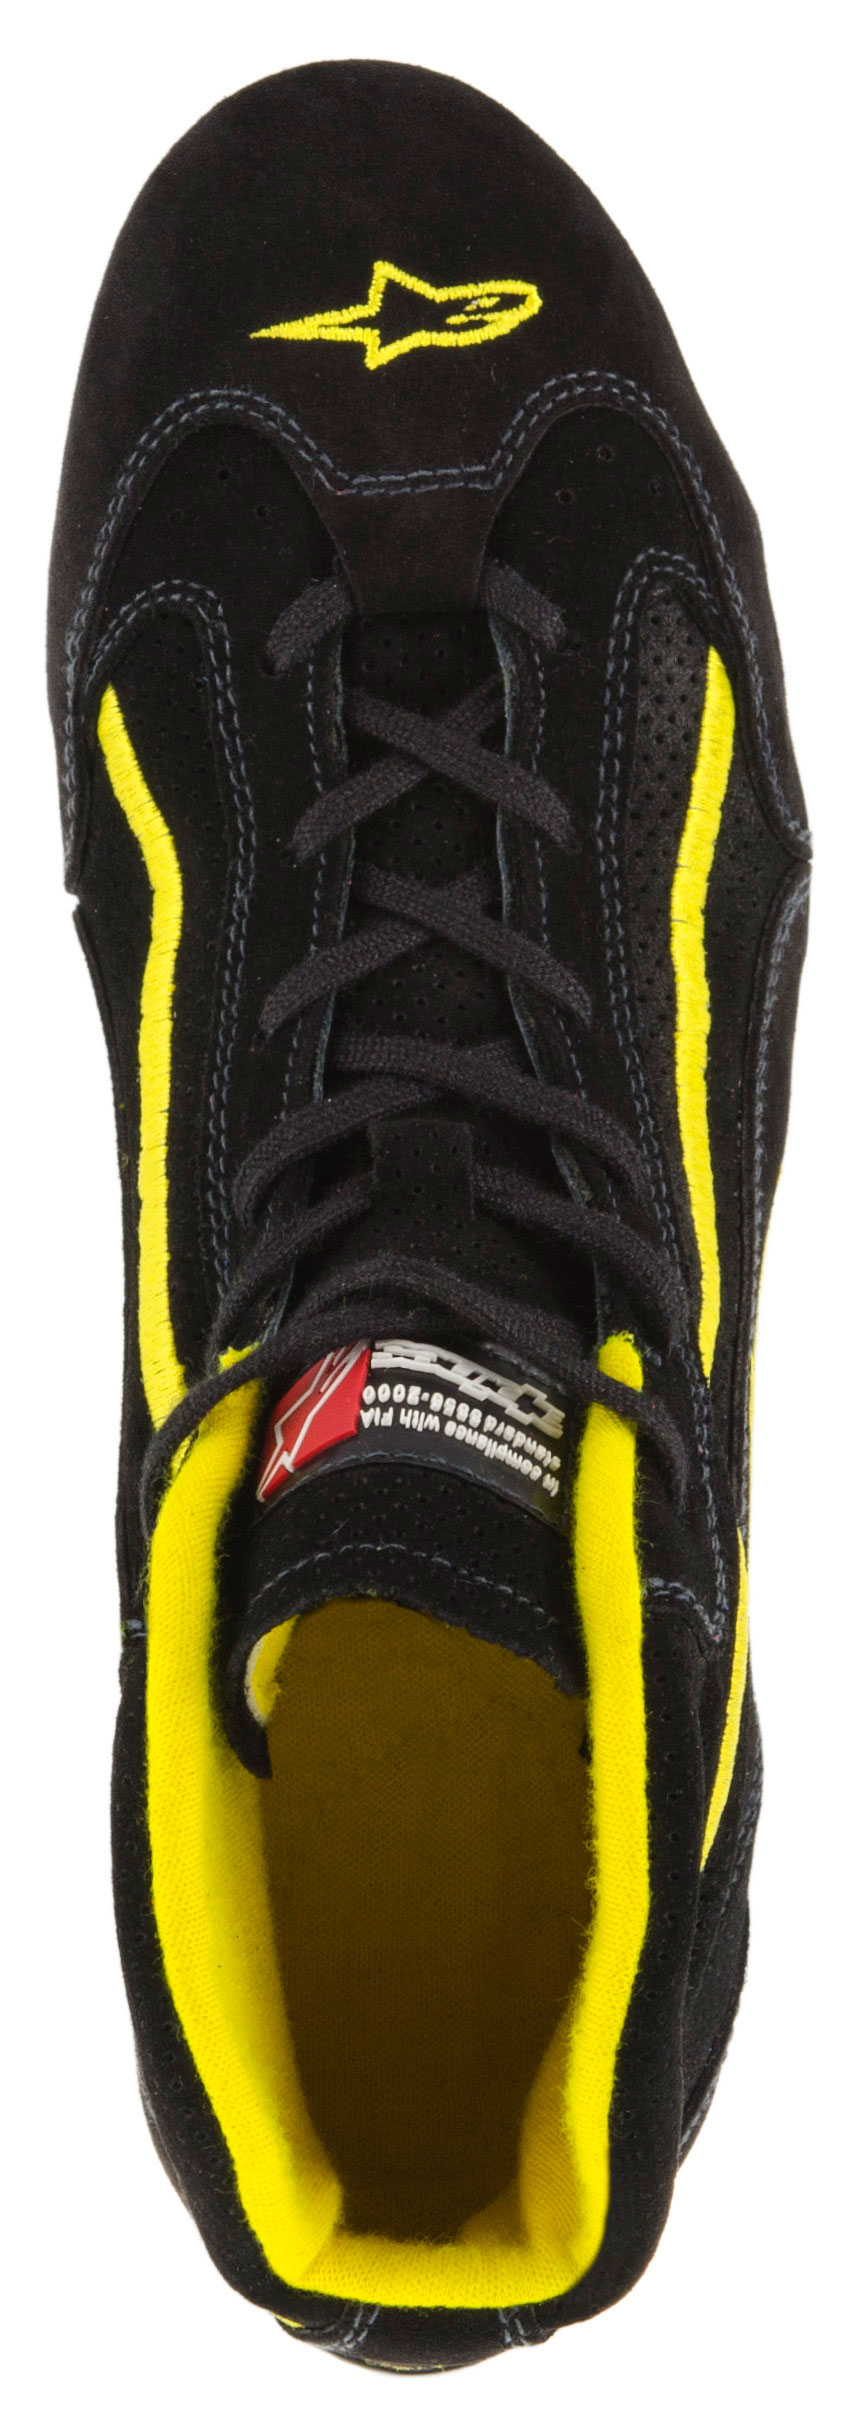 SP_SHOE_black_yellowfluo_rot6